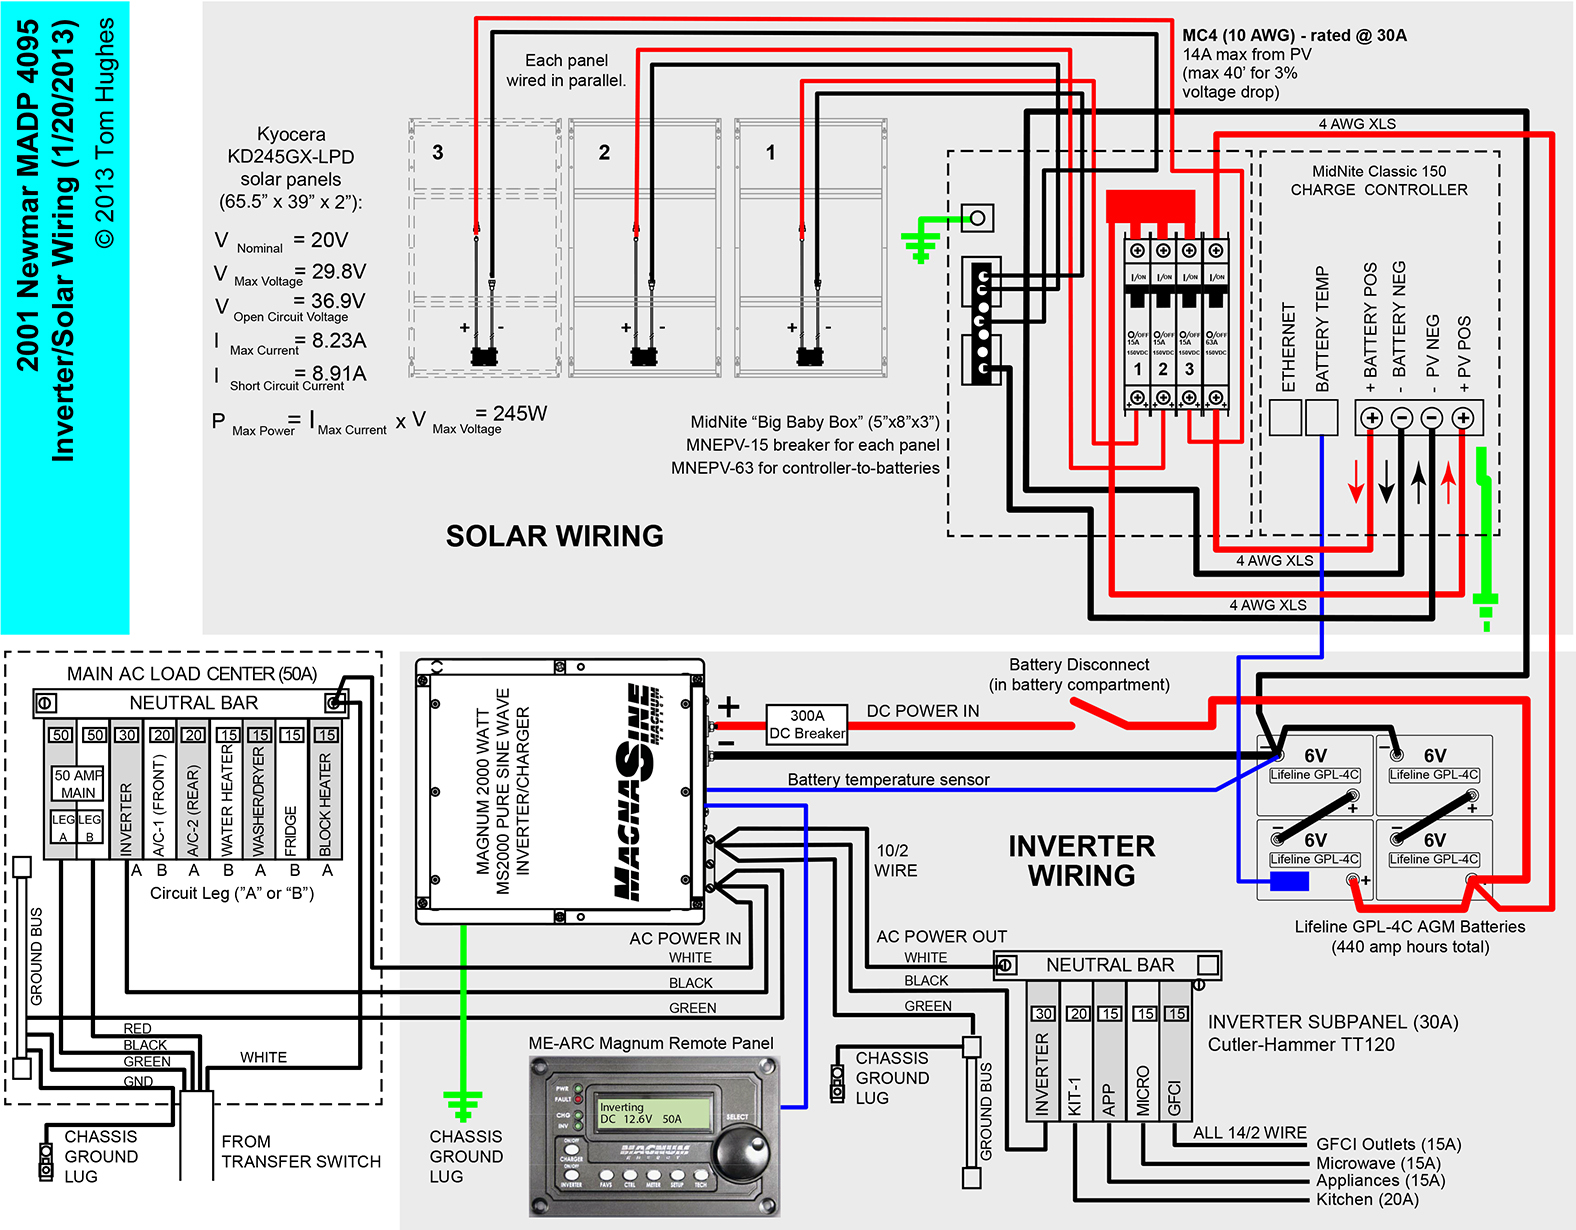 magnum inverter rvseniormoments Shore Power Inverter Transfer Switch inverter wiring diagram and some installation photos click to enlarge the image